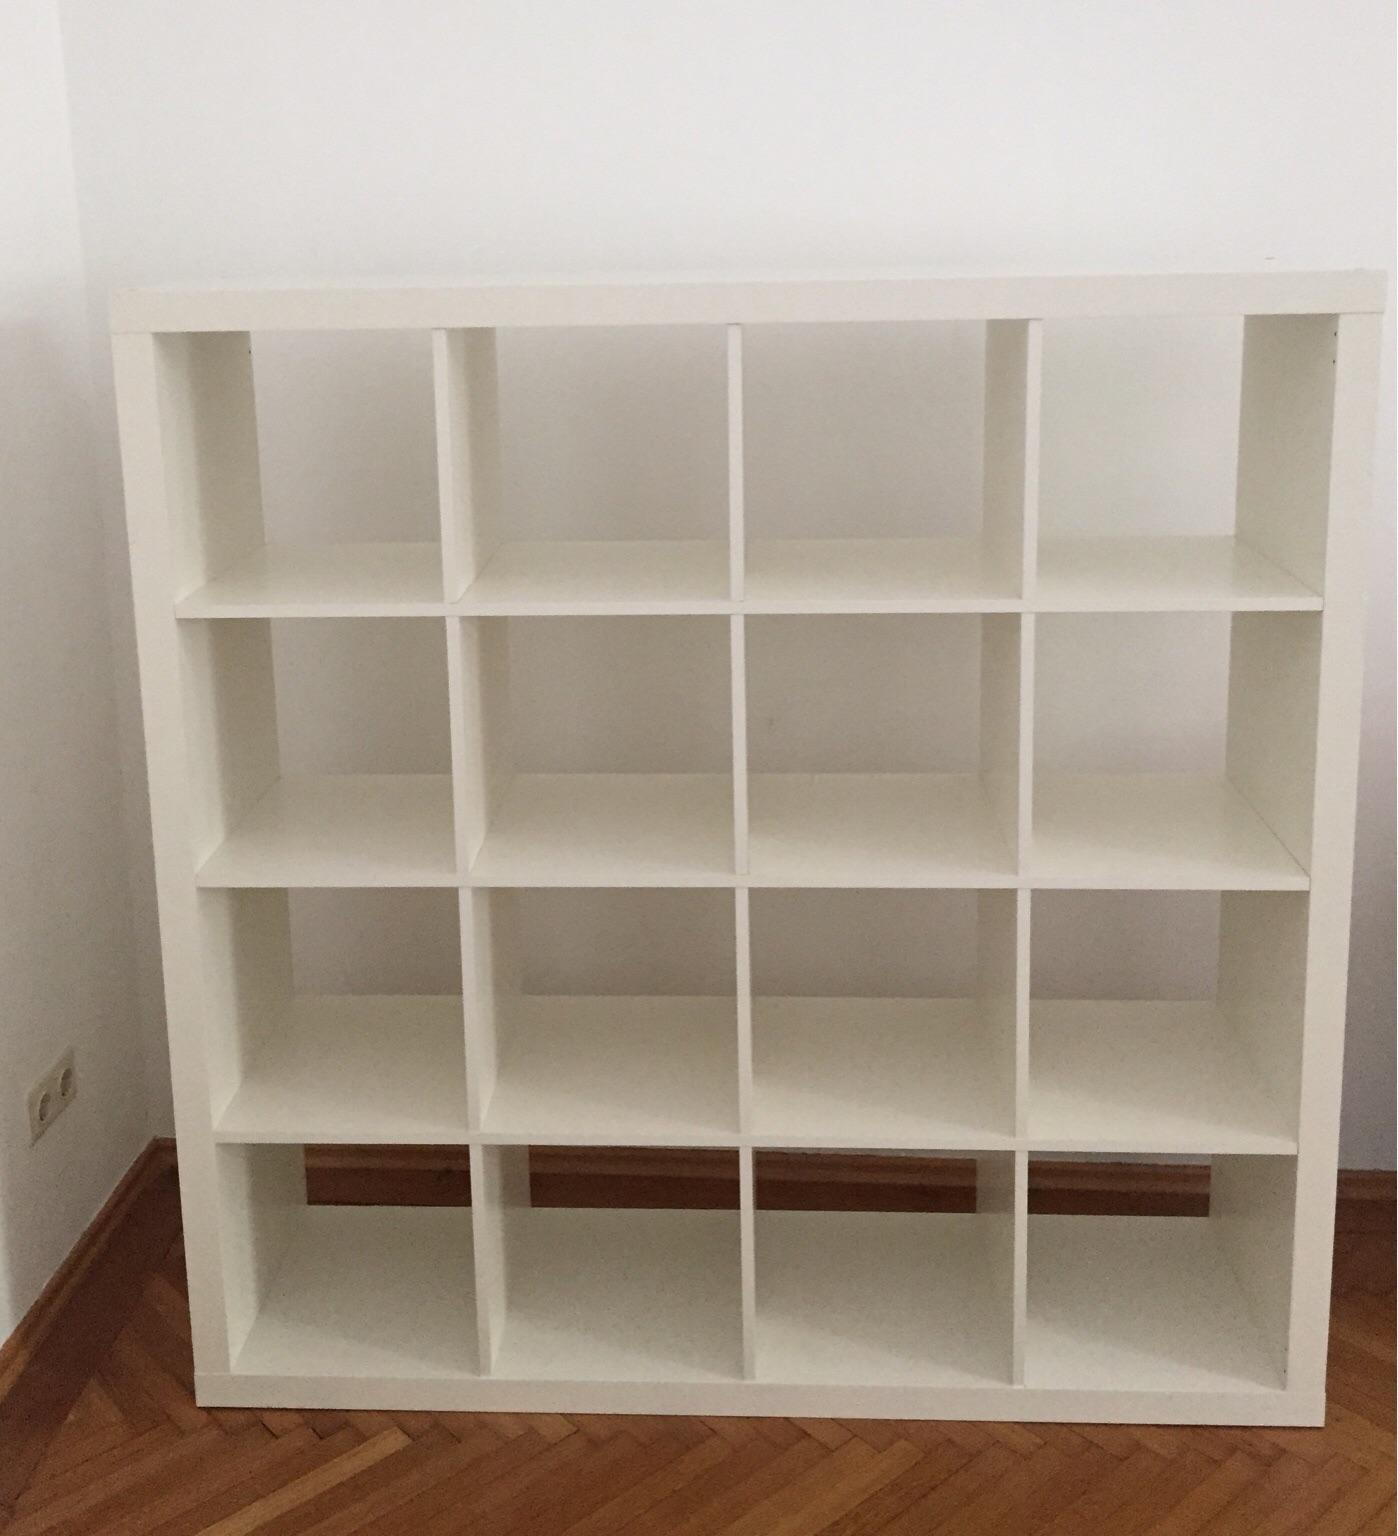 Ikea Kallax Ehemals Expedit Regal Weiss In 1090 Wien For 50 00